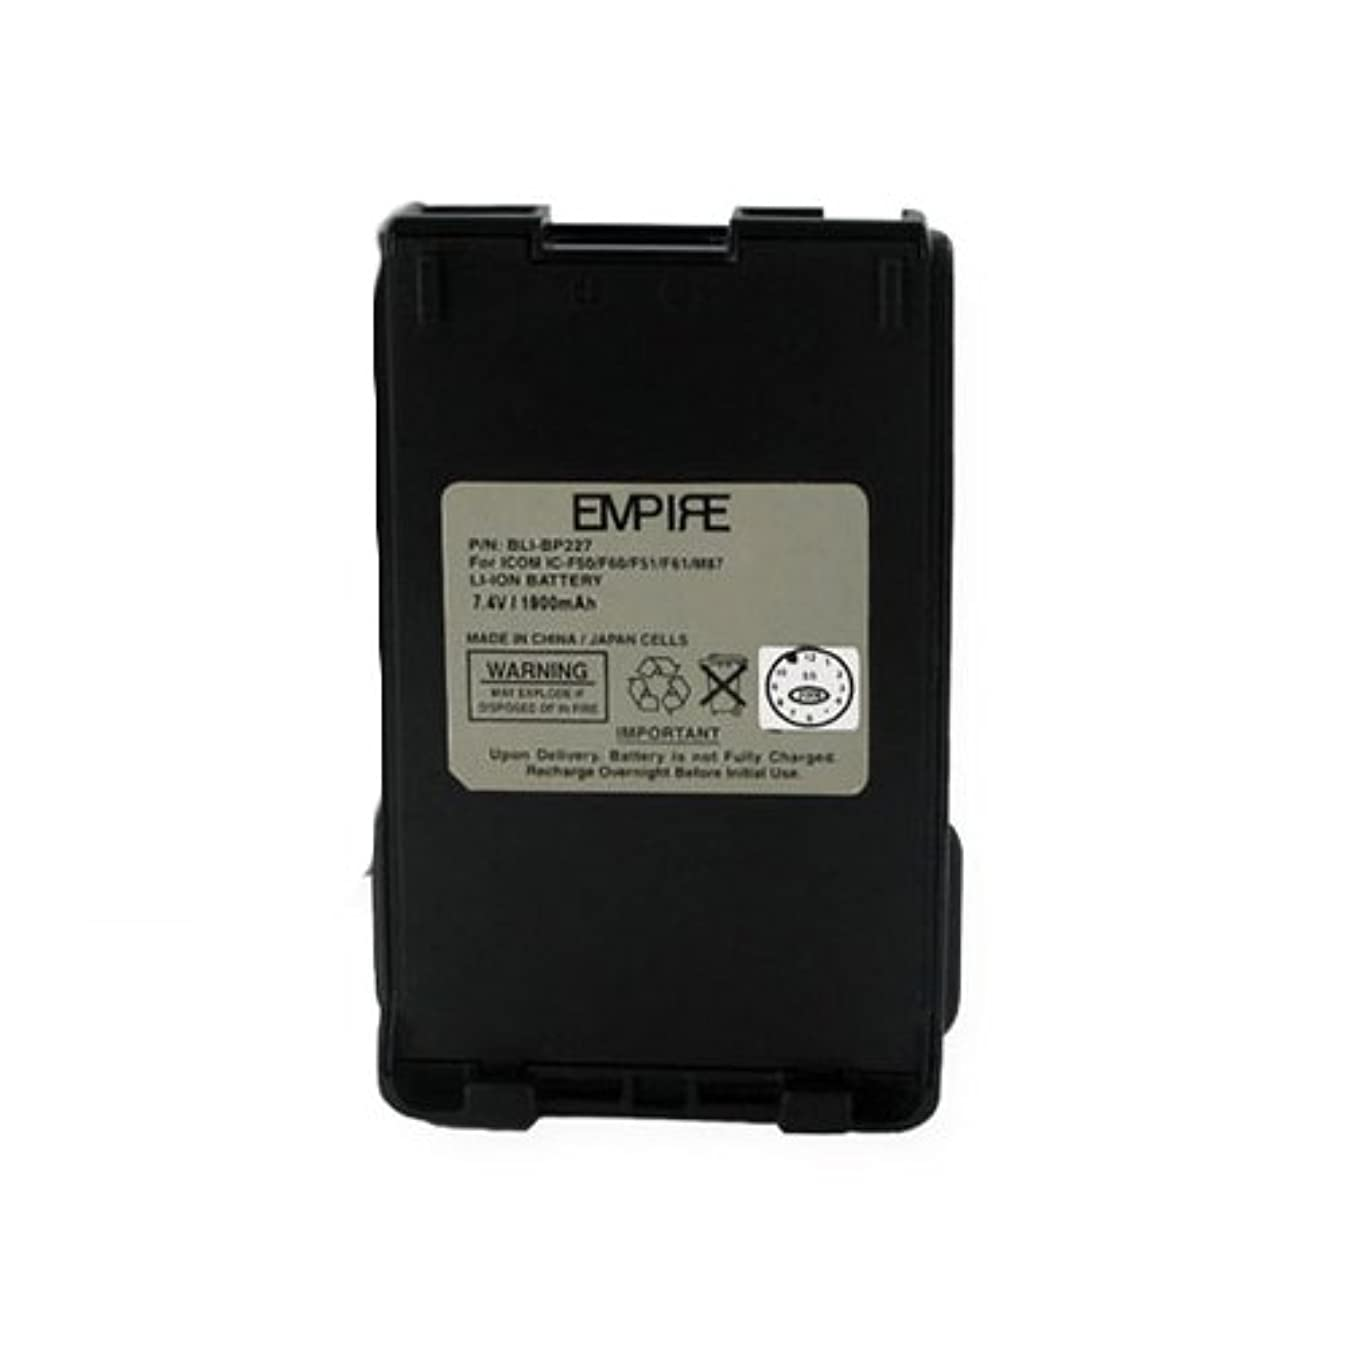 Icom IC-F88 2-Way Radio Battery (Li-Ion 7.2V 1900mAh) Rechargeable Battery - Replacement for Icom BP227 Battery